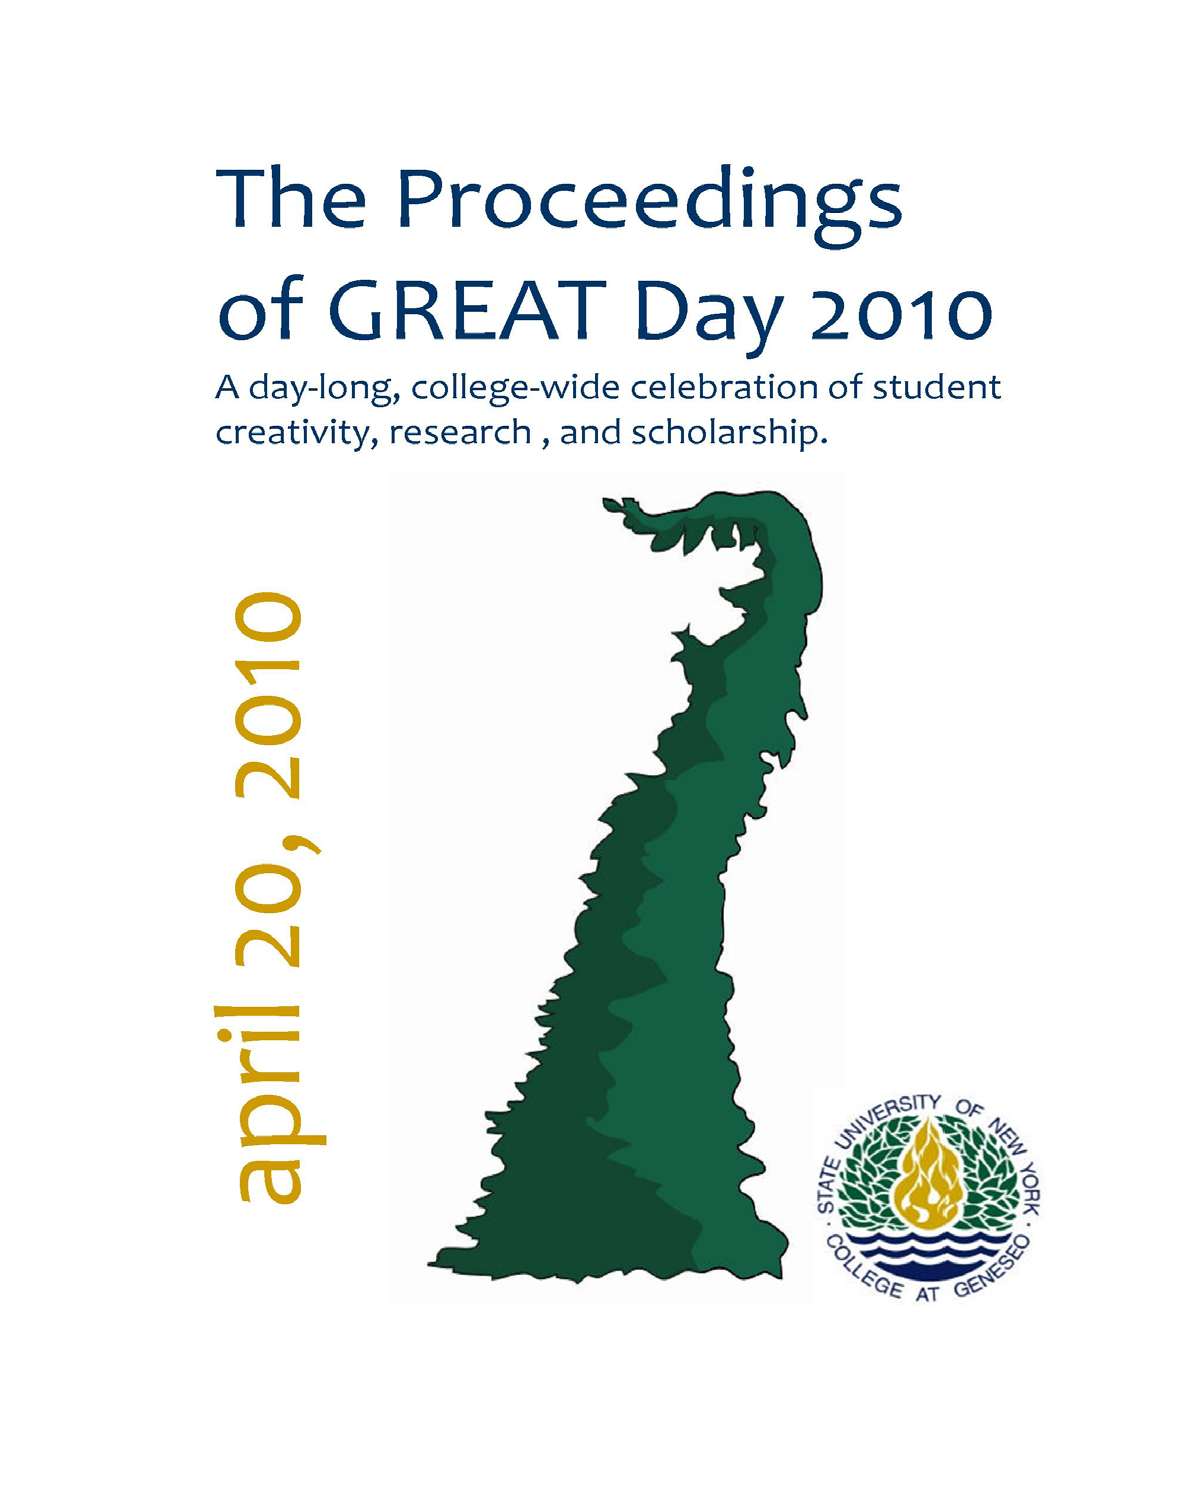 The Proceedings of Great Day: 2010